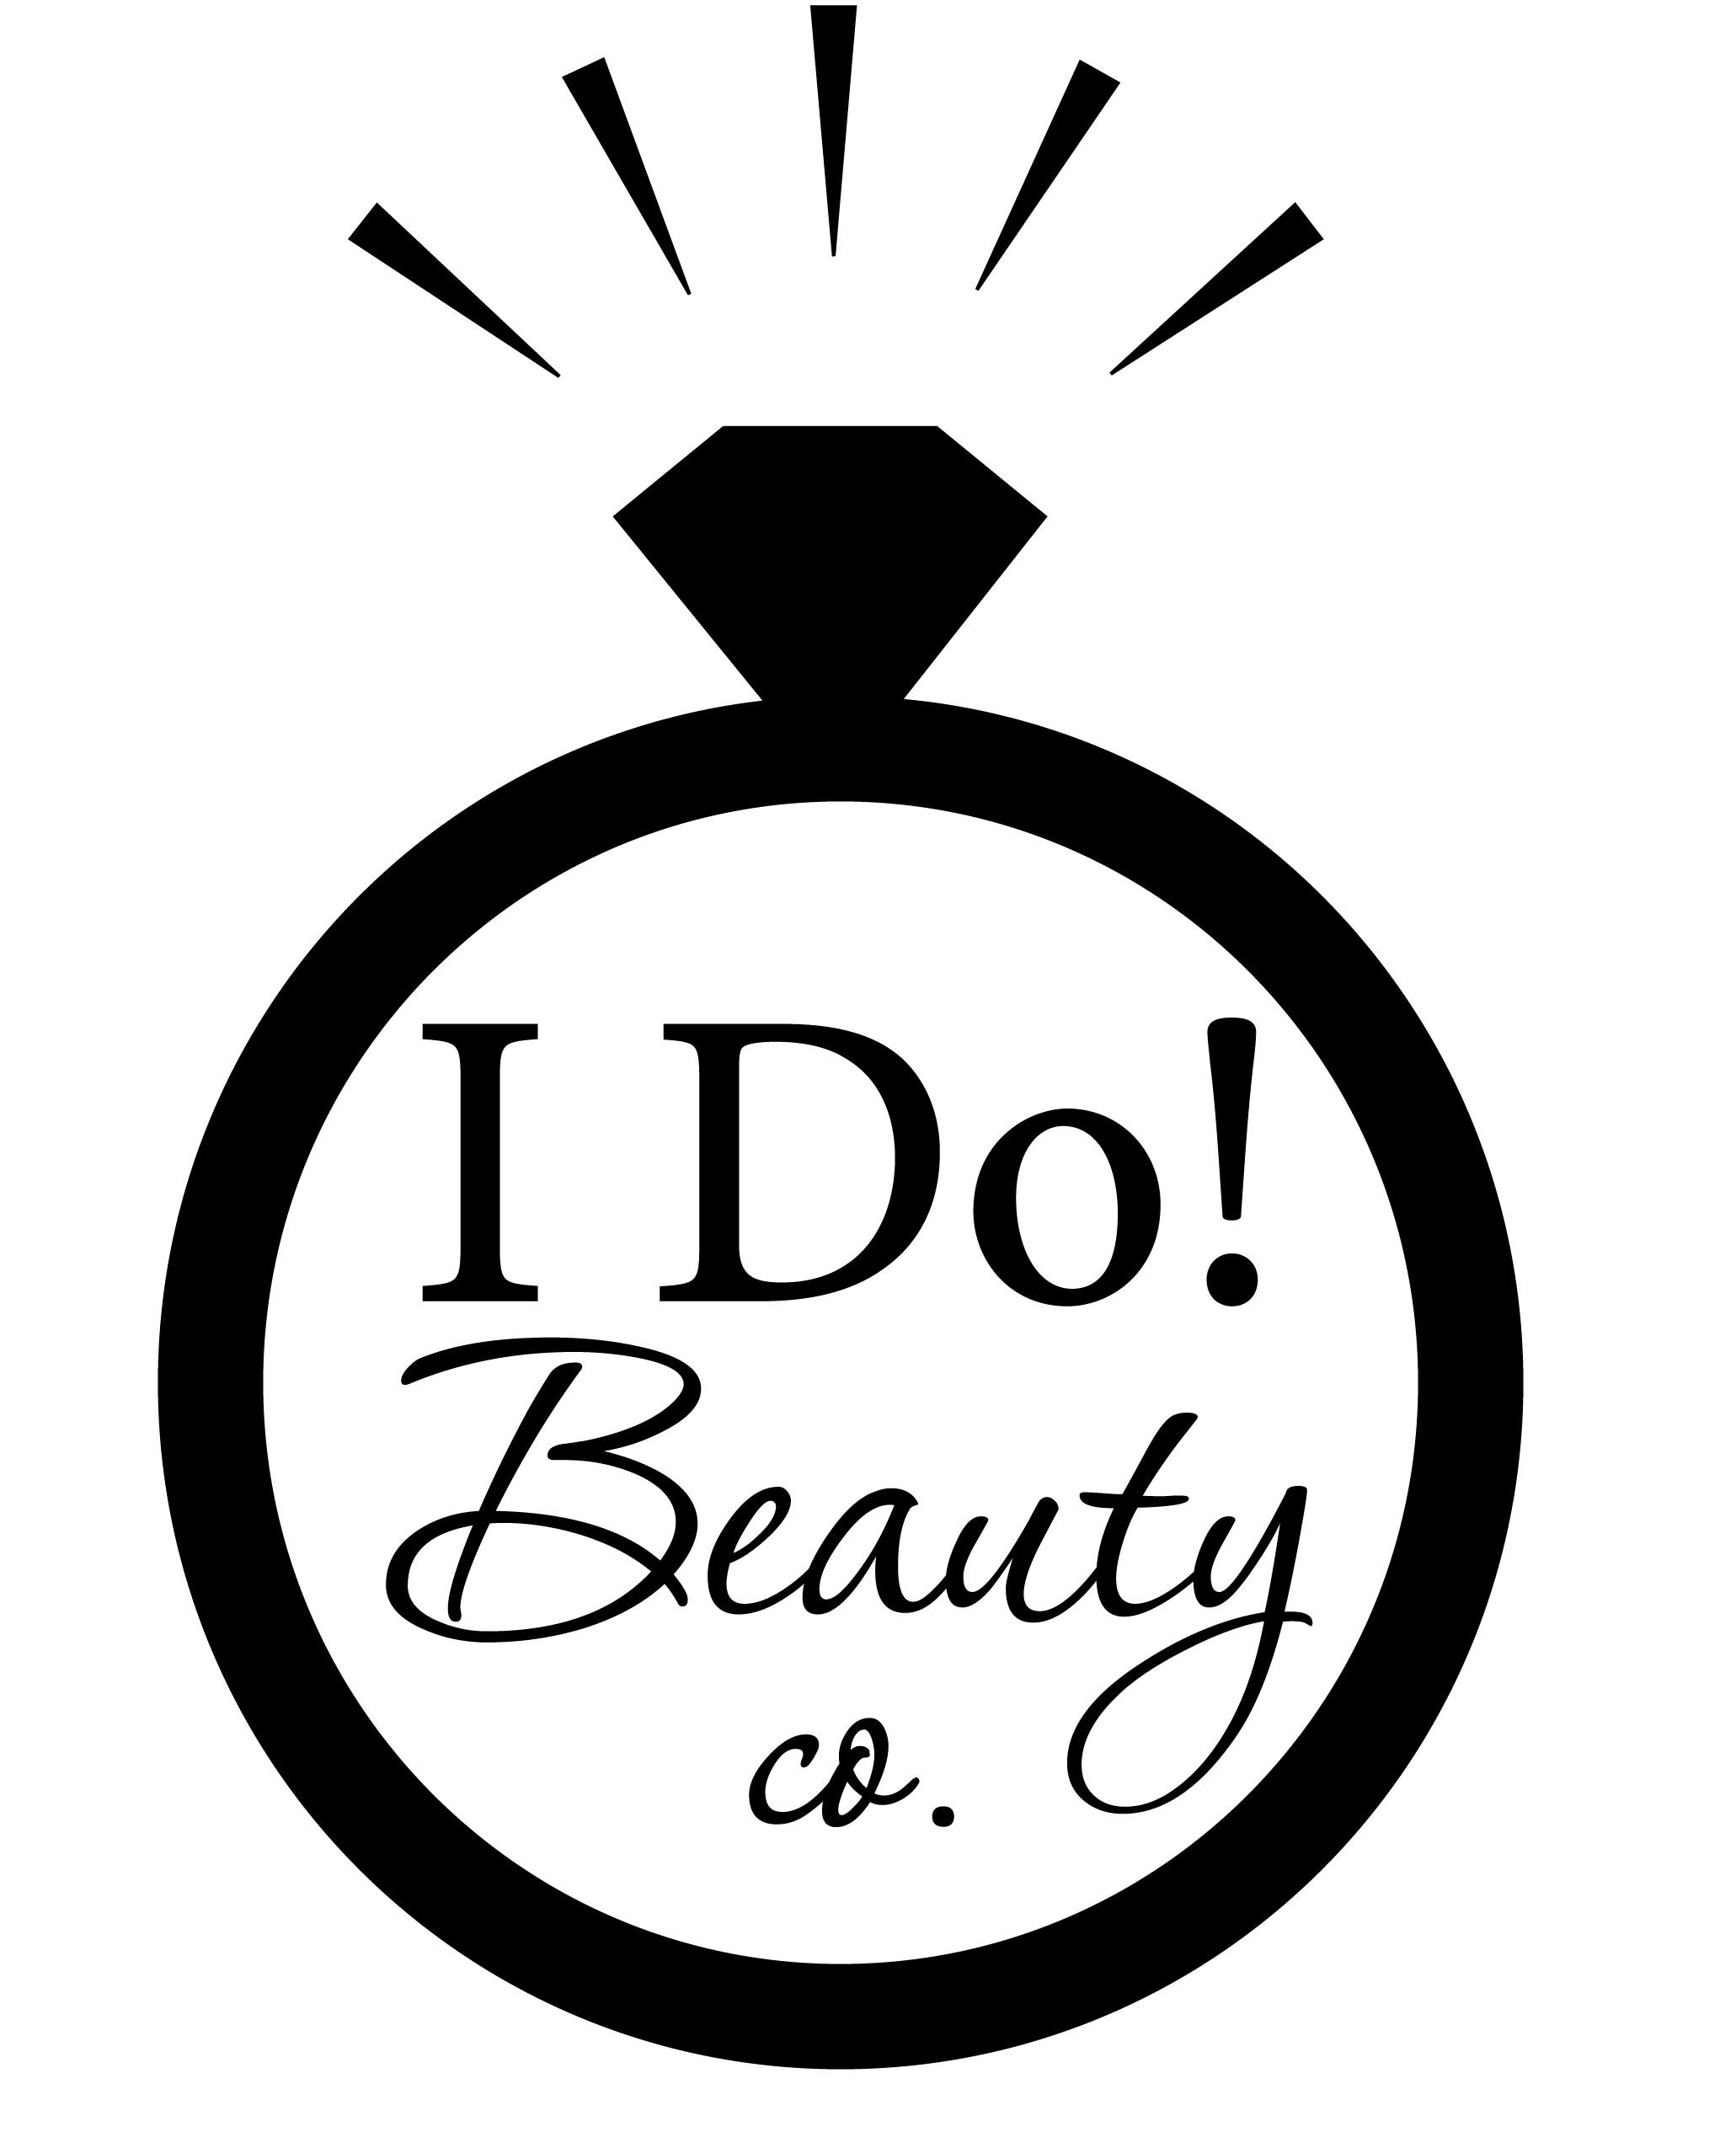 I Do! Beauty Co.